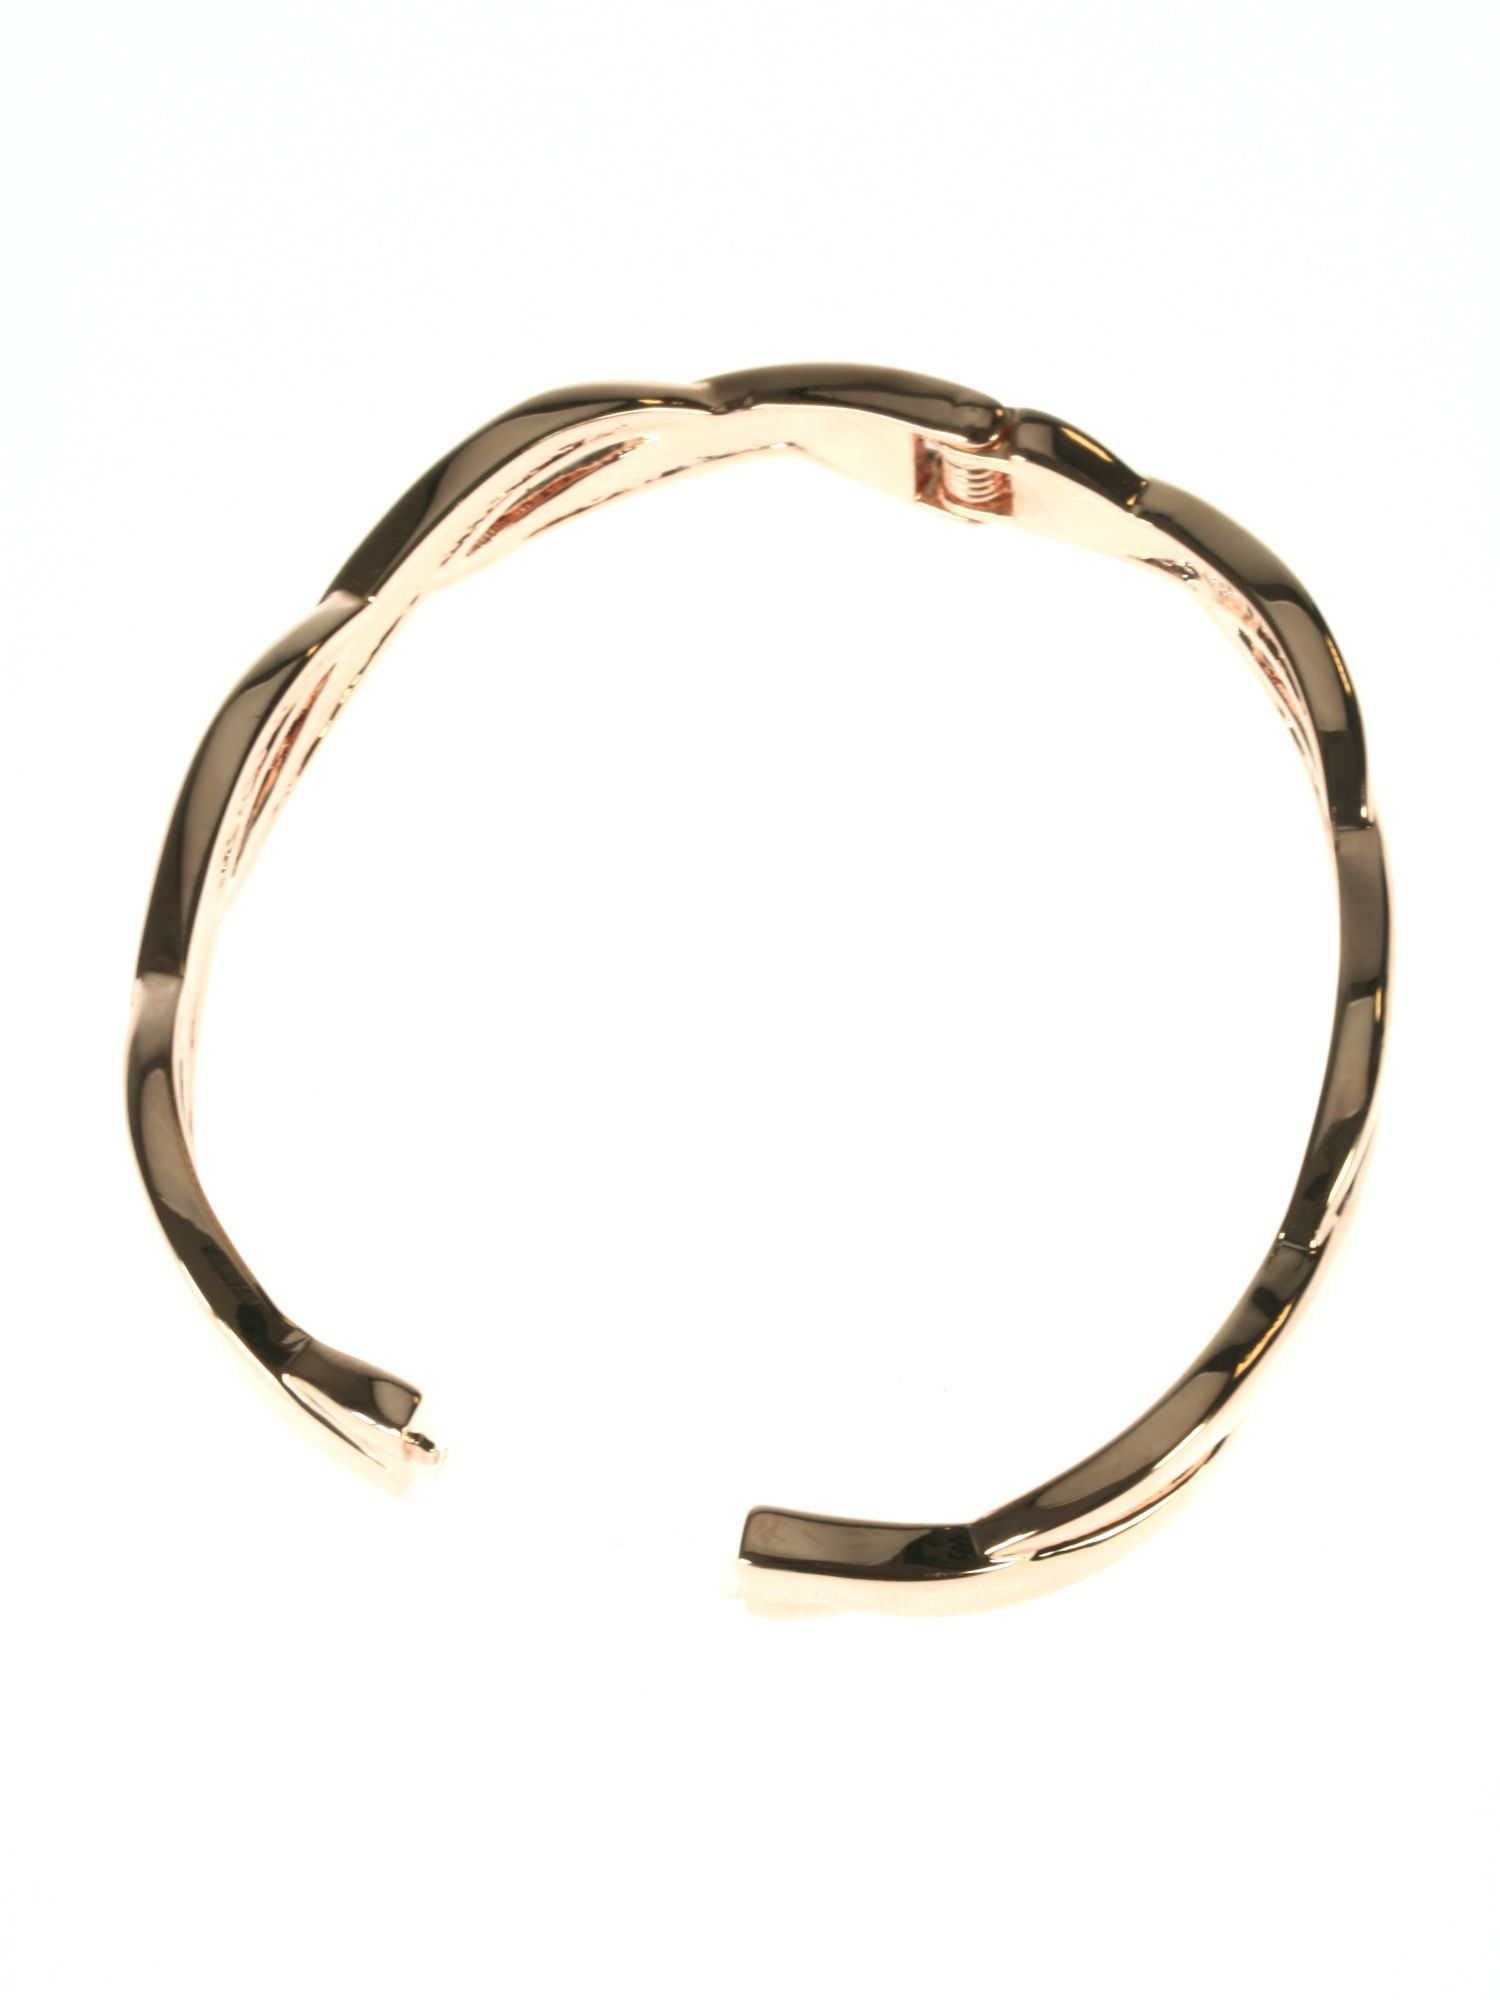 Rose gold plated twist hinged bangle